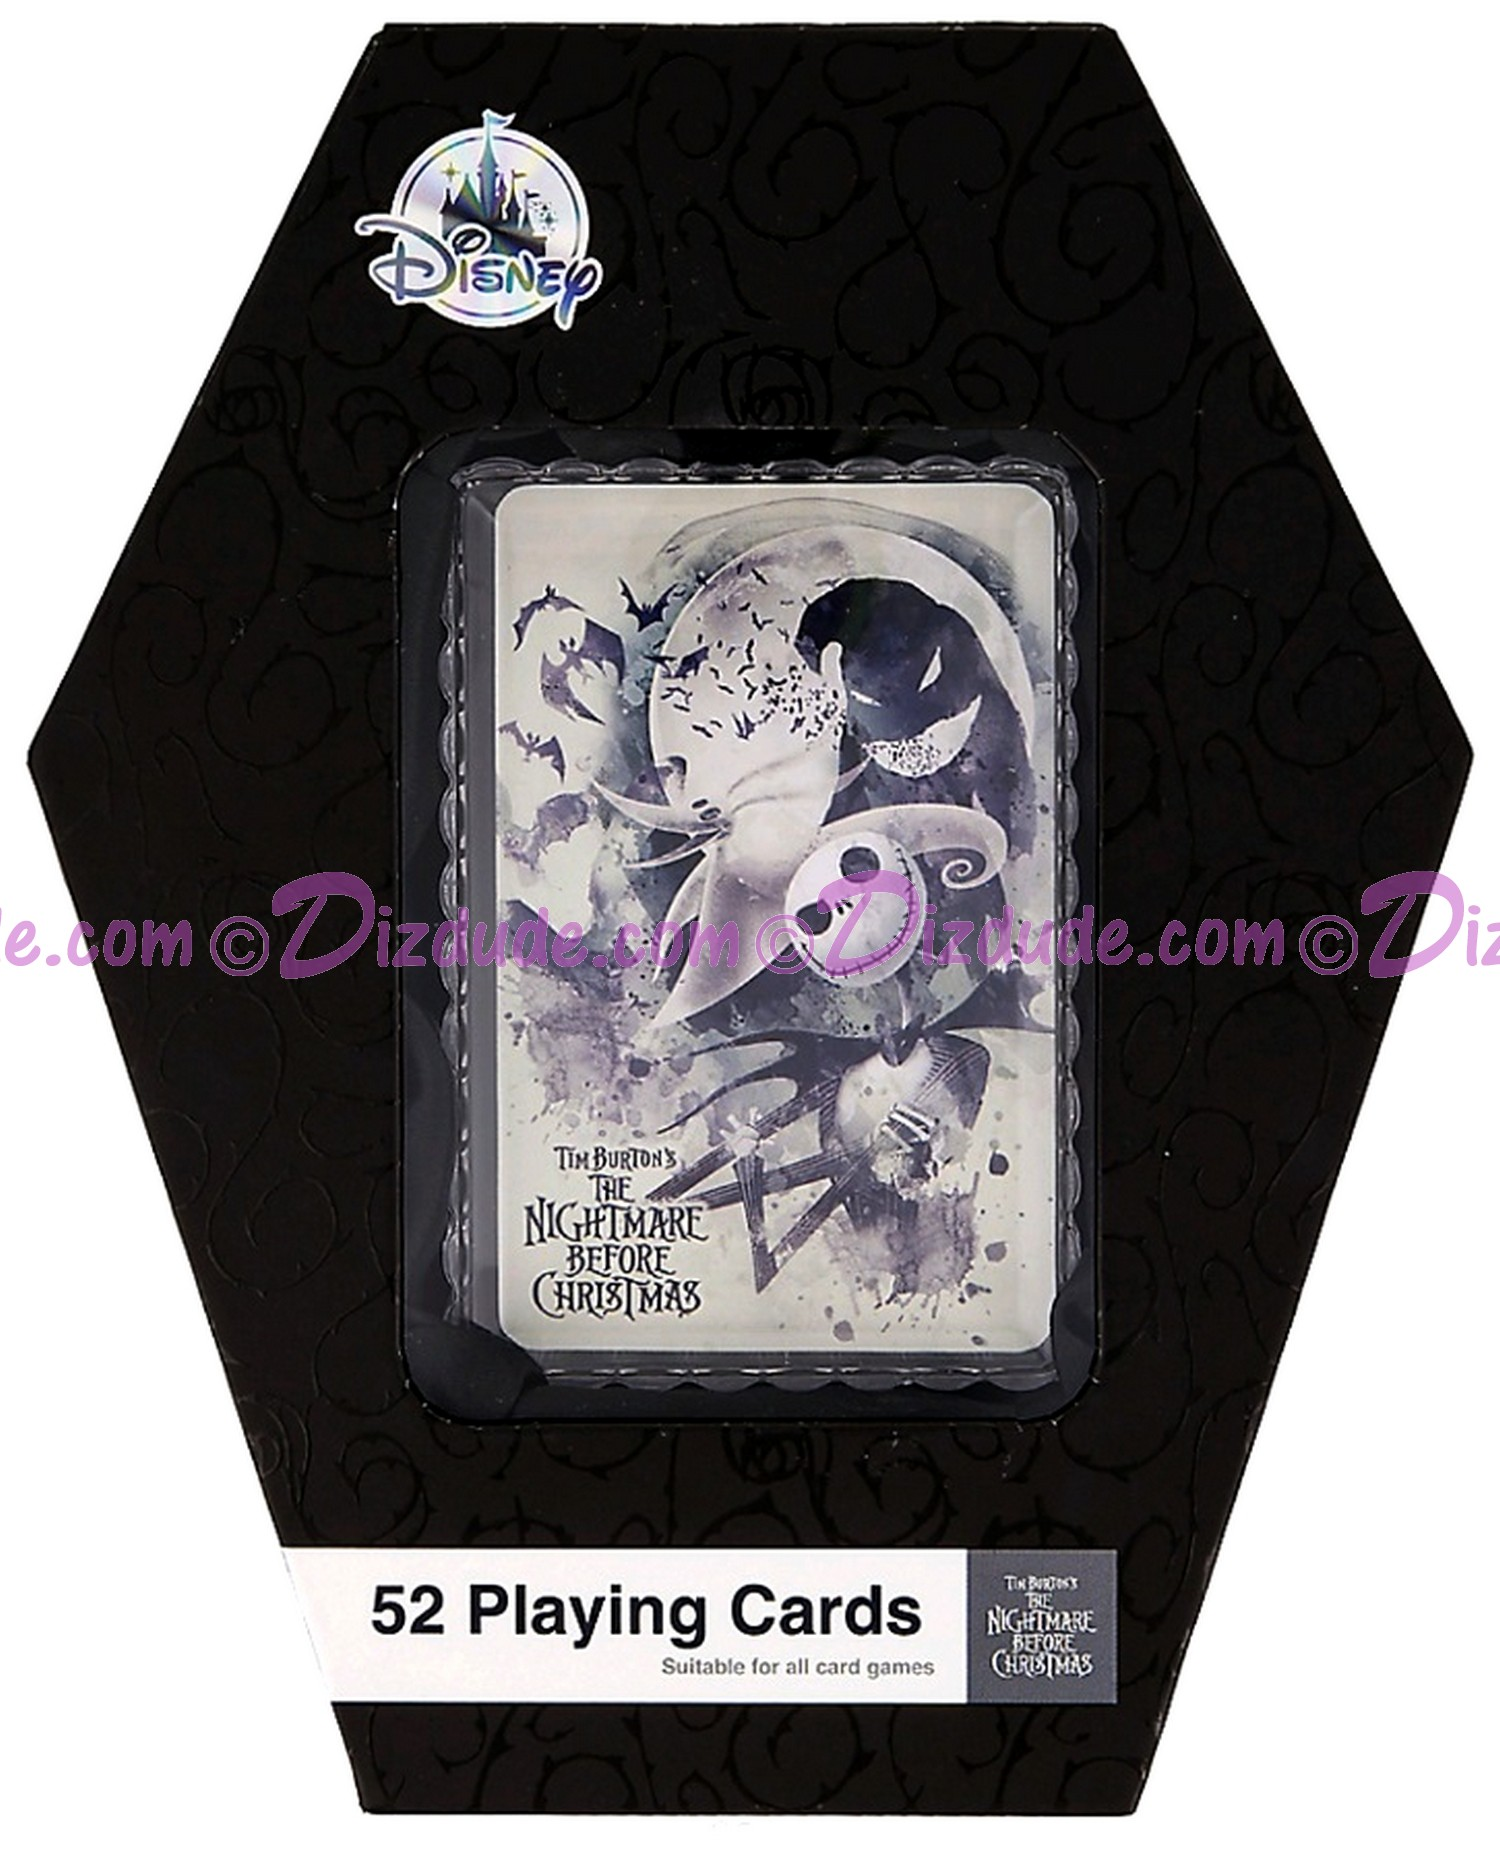 Disney The Nightmare Before Christmas Playing Cards Set (52 cards) © Dizdude.com